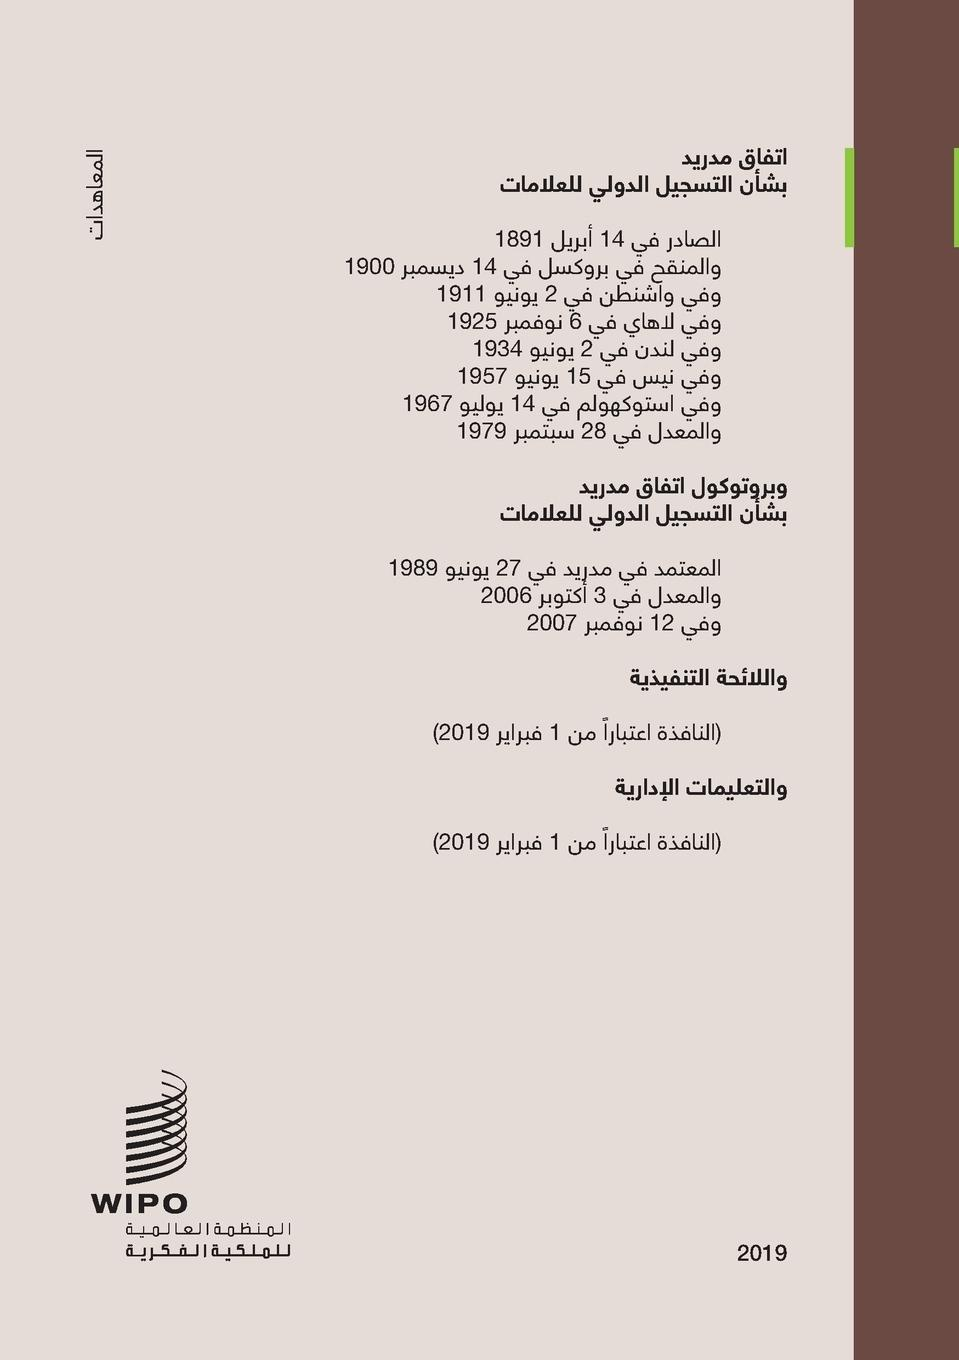 Madrid Agreement Concerning the International Registration of Marks. Regulations as in force on February 1, 2019 (Arabic edition) registration